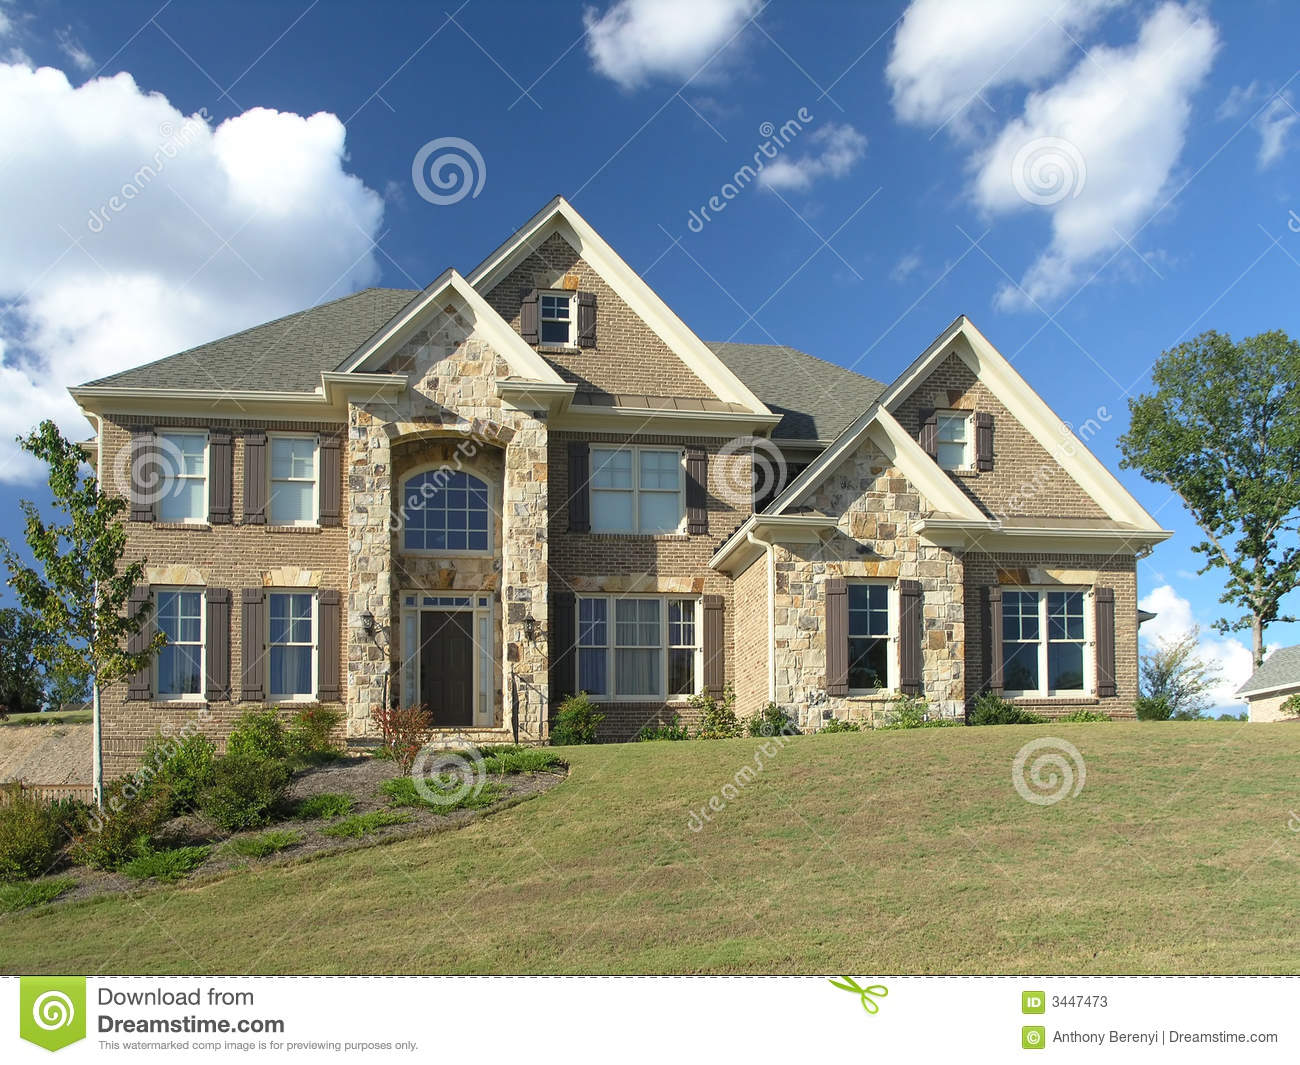 Luxury home exterior 57 stock photos image 3447473 for Luxury home exteriors